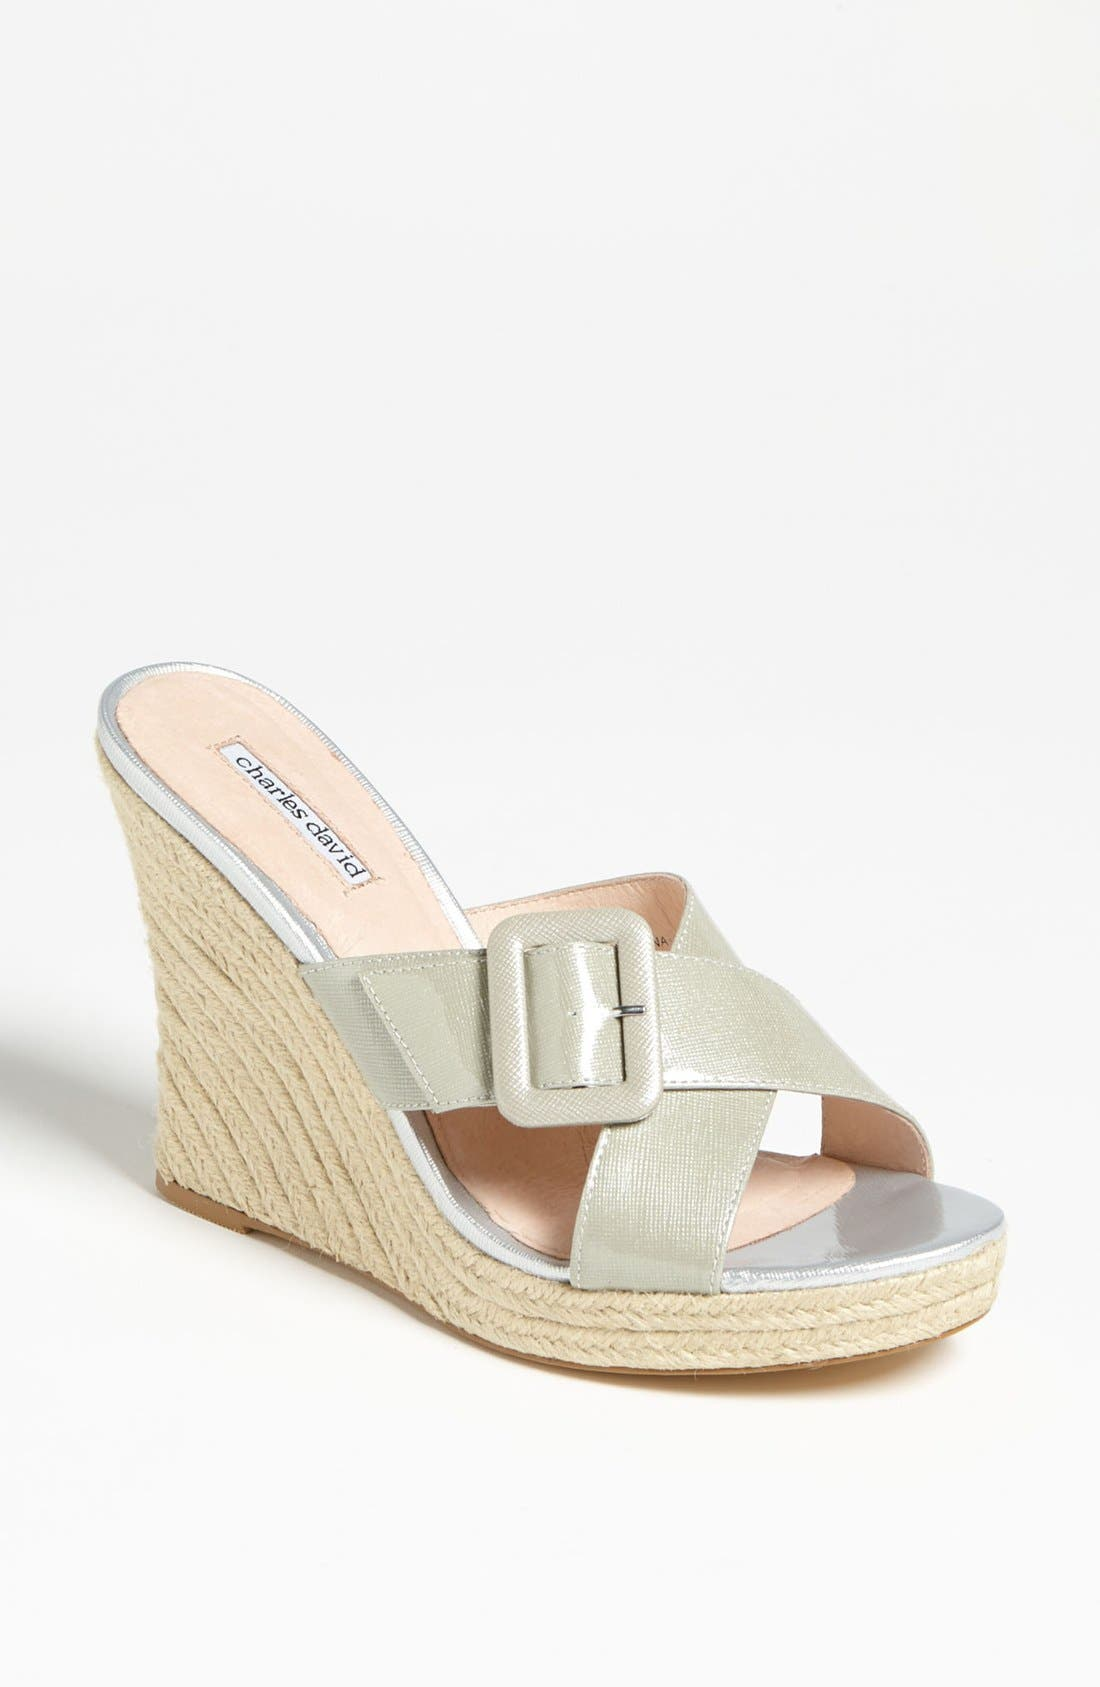 Alternate Image 1 Selected - Charles David 'Nelly' Wedge Sandal